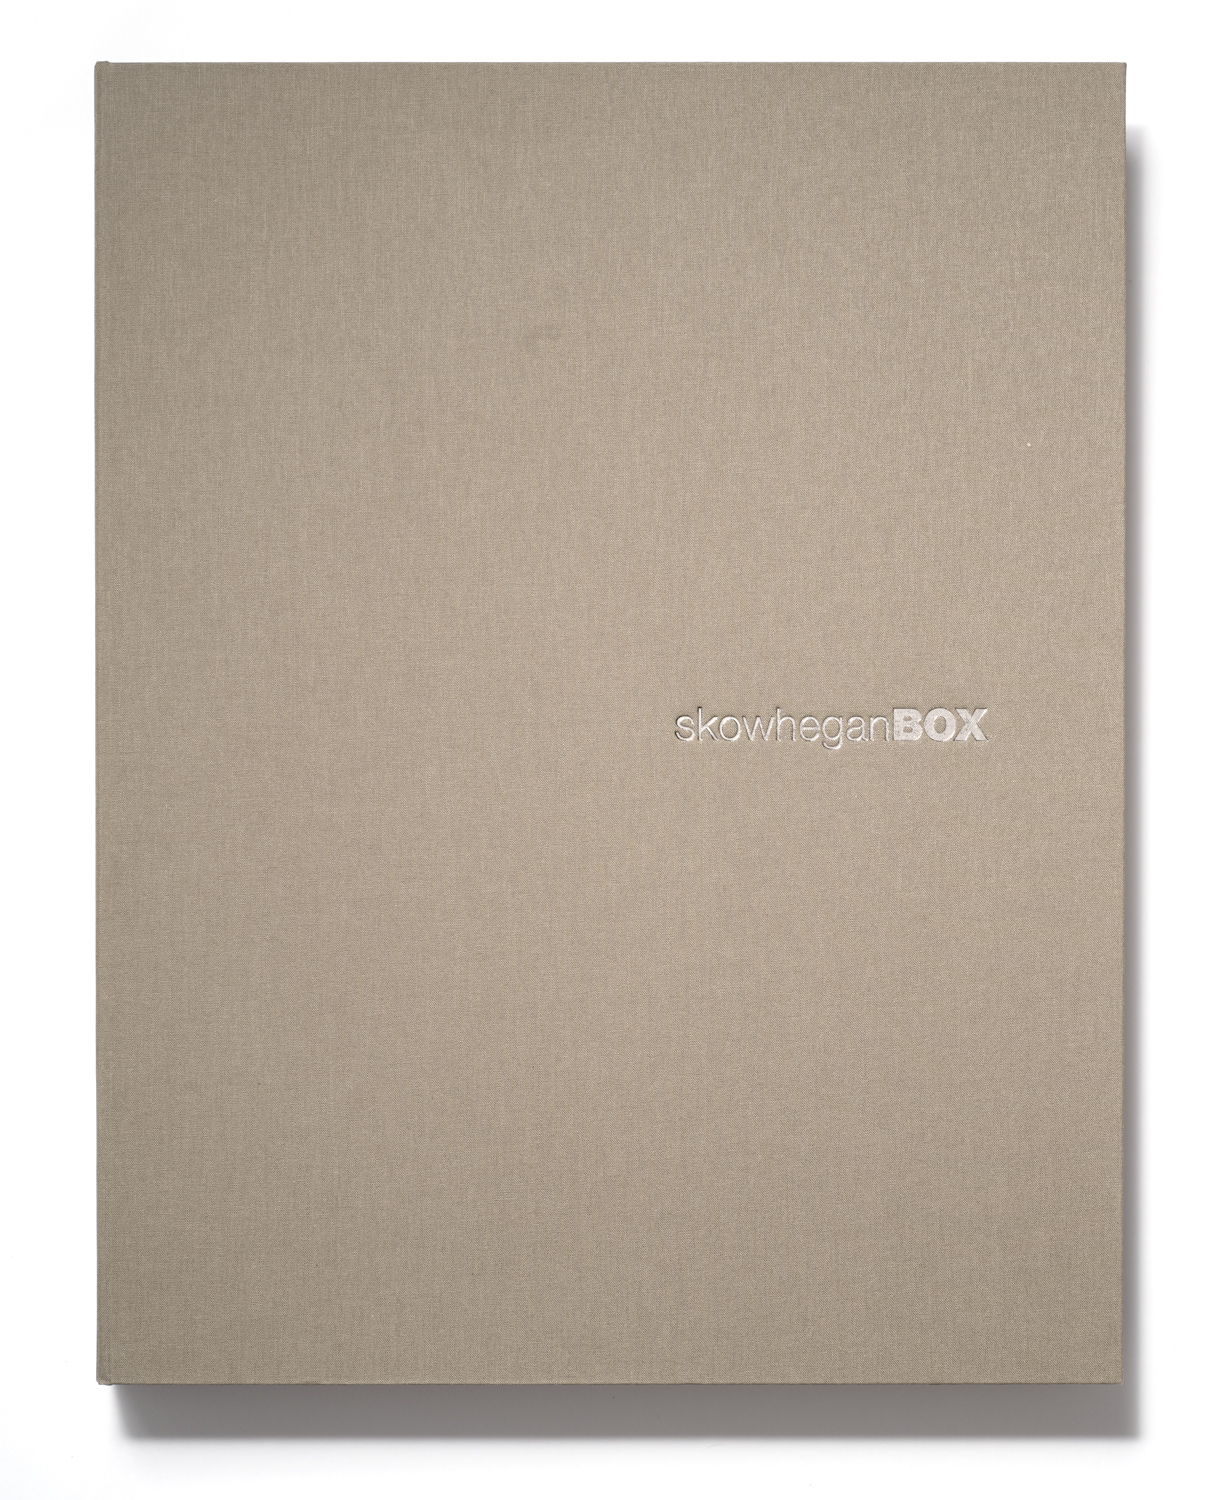 skowheganBOX no. 2, closed front cover.